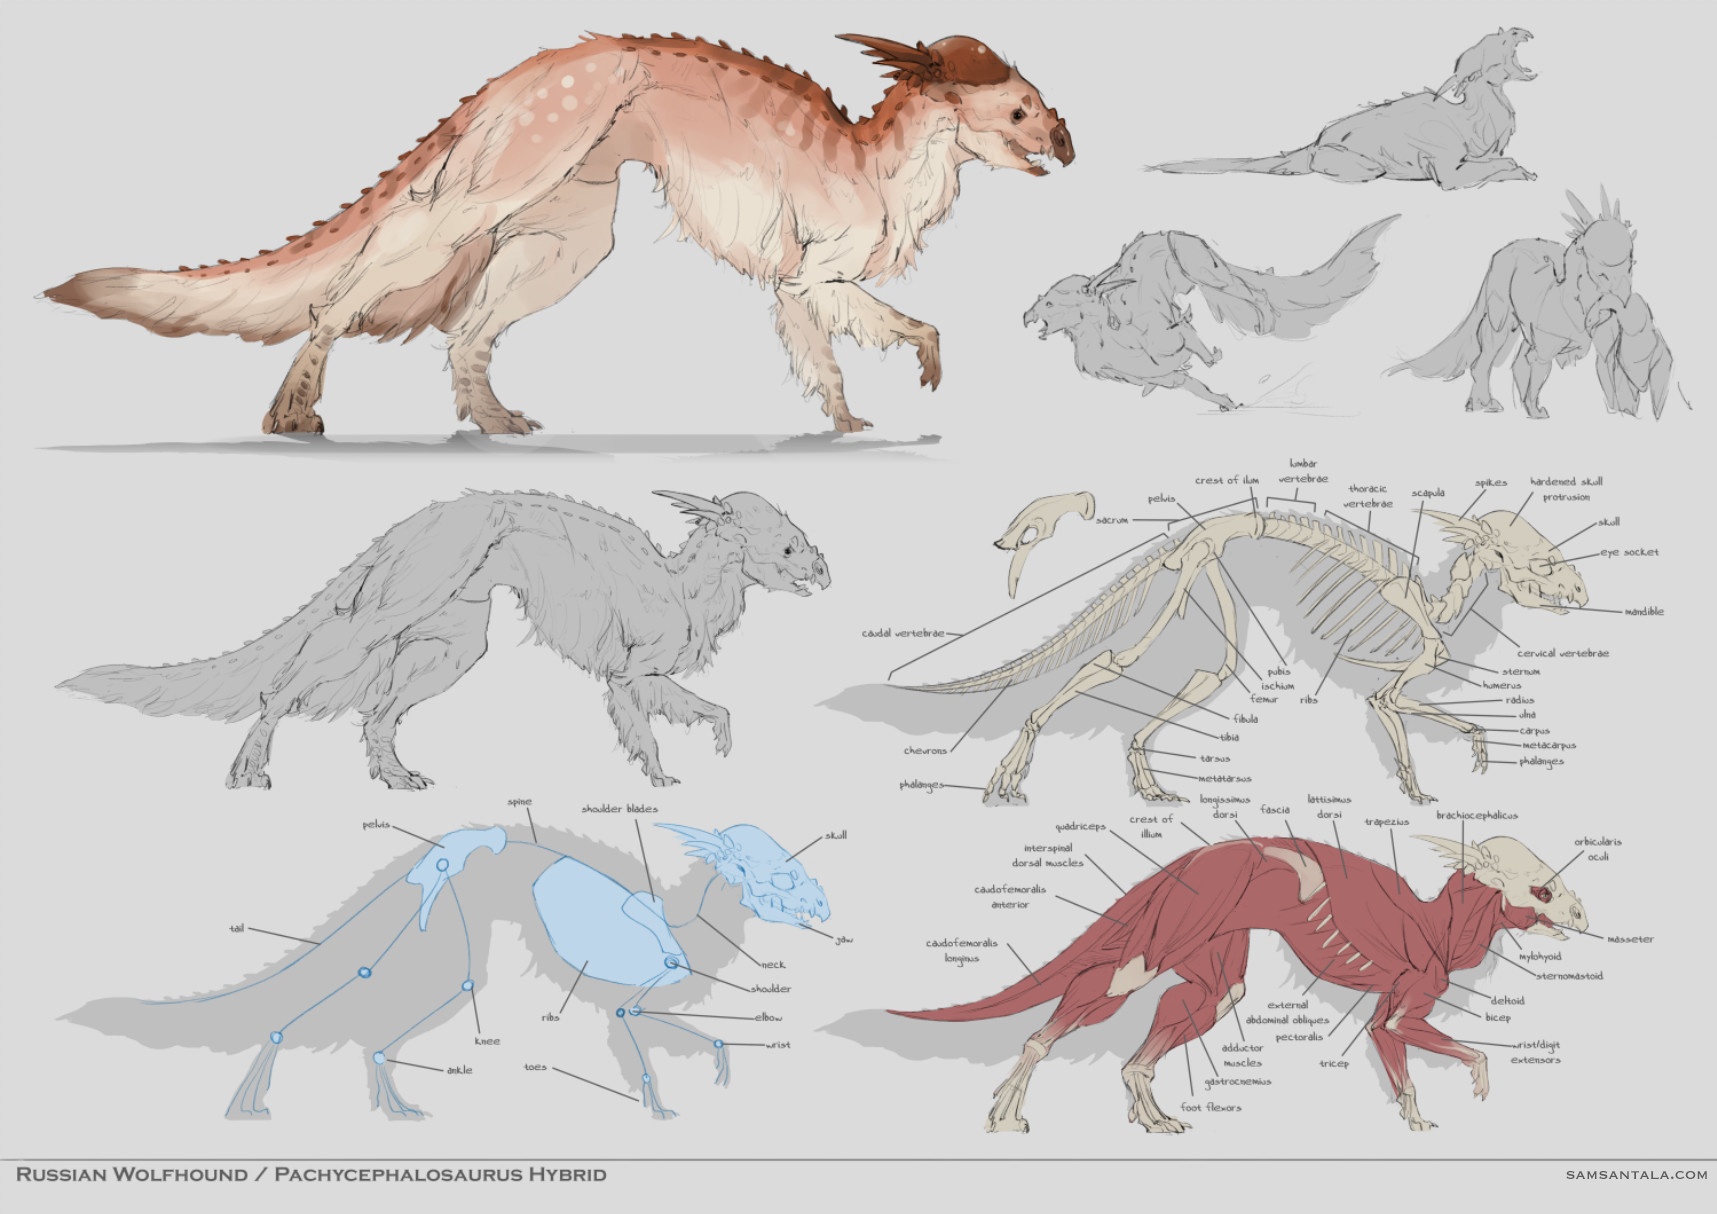 ArtStation - Dog/Dinosaur Studies, Sam Santala